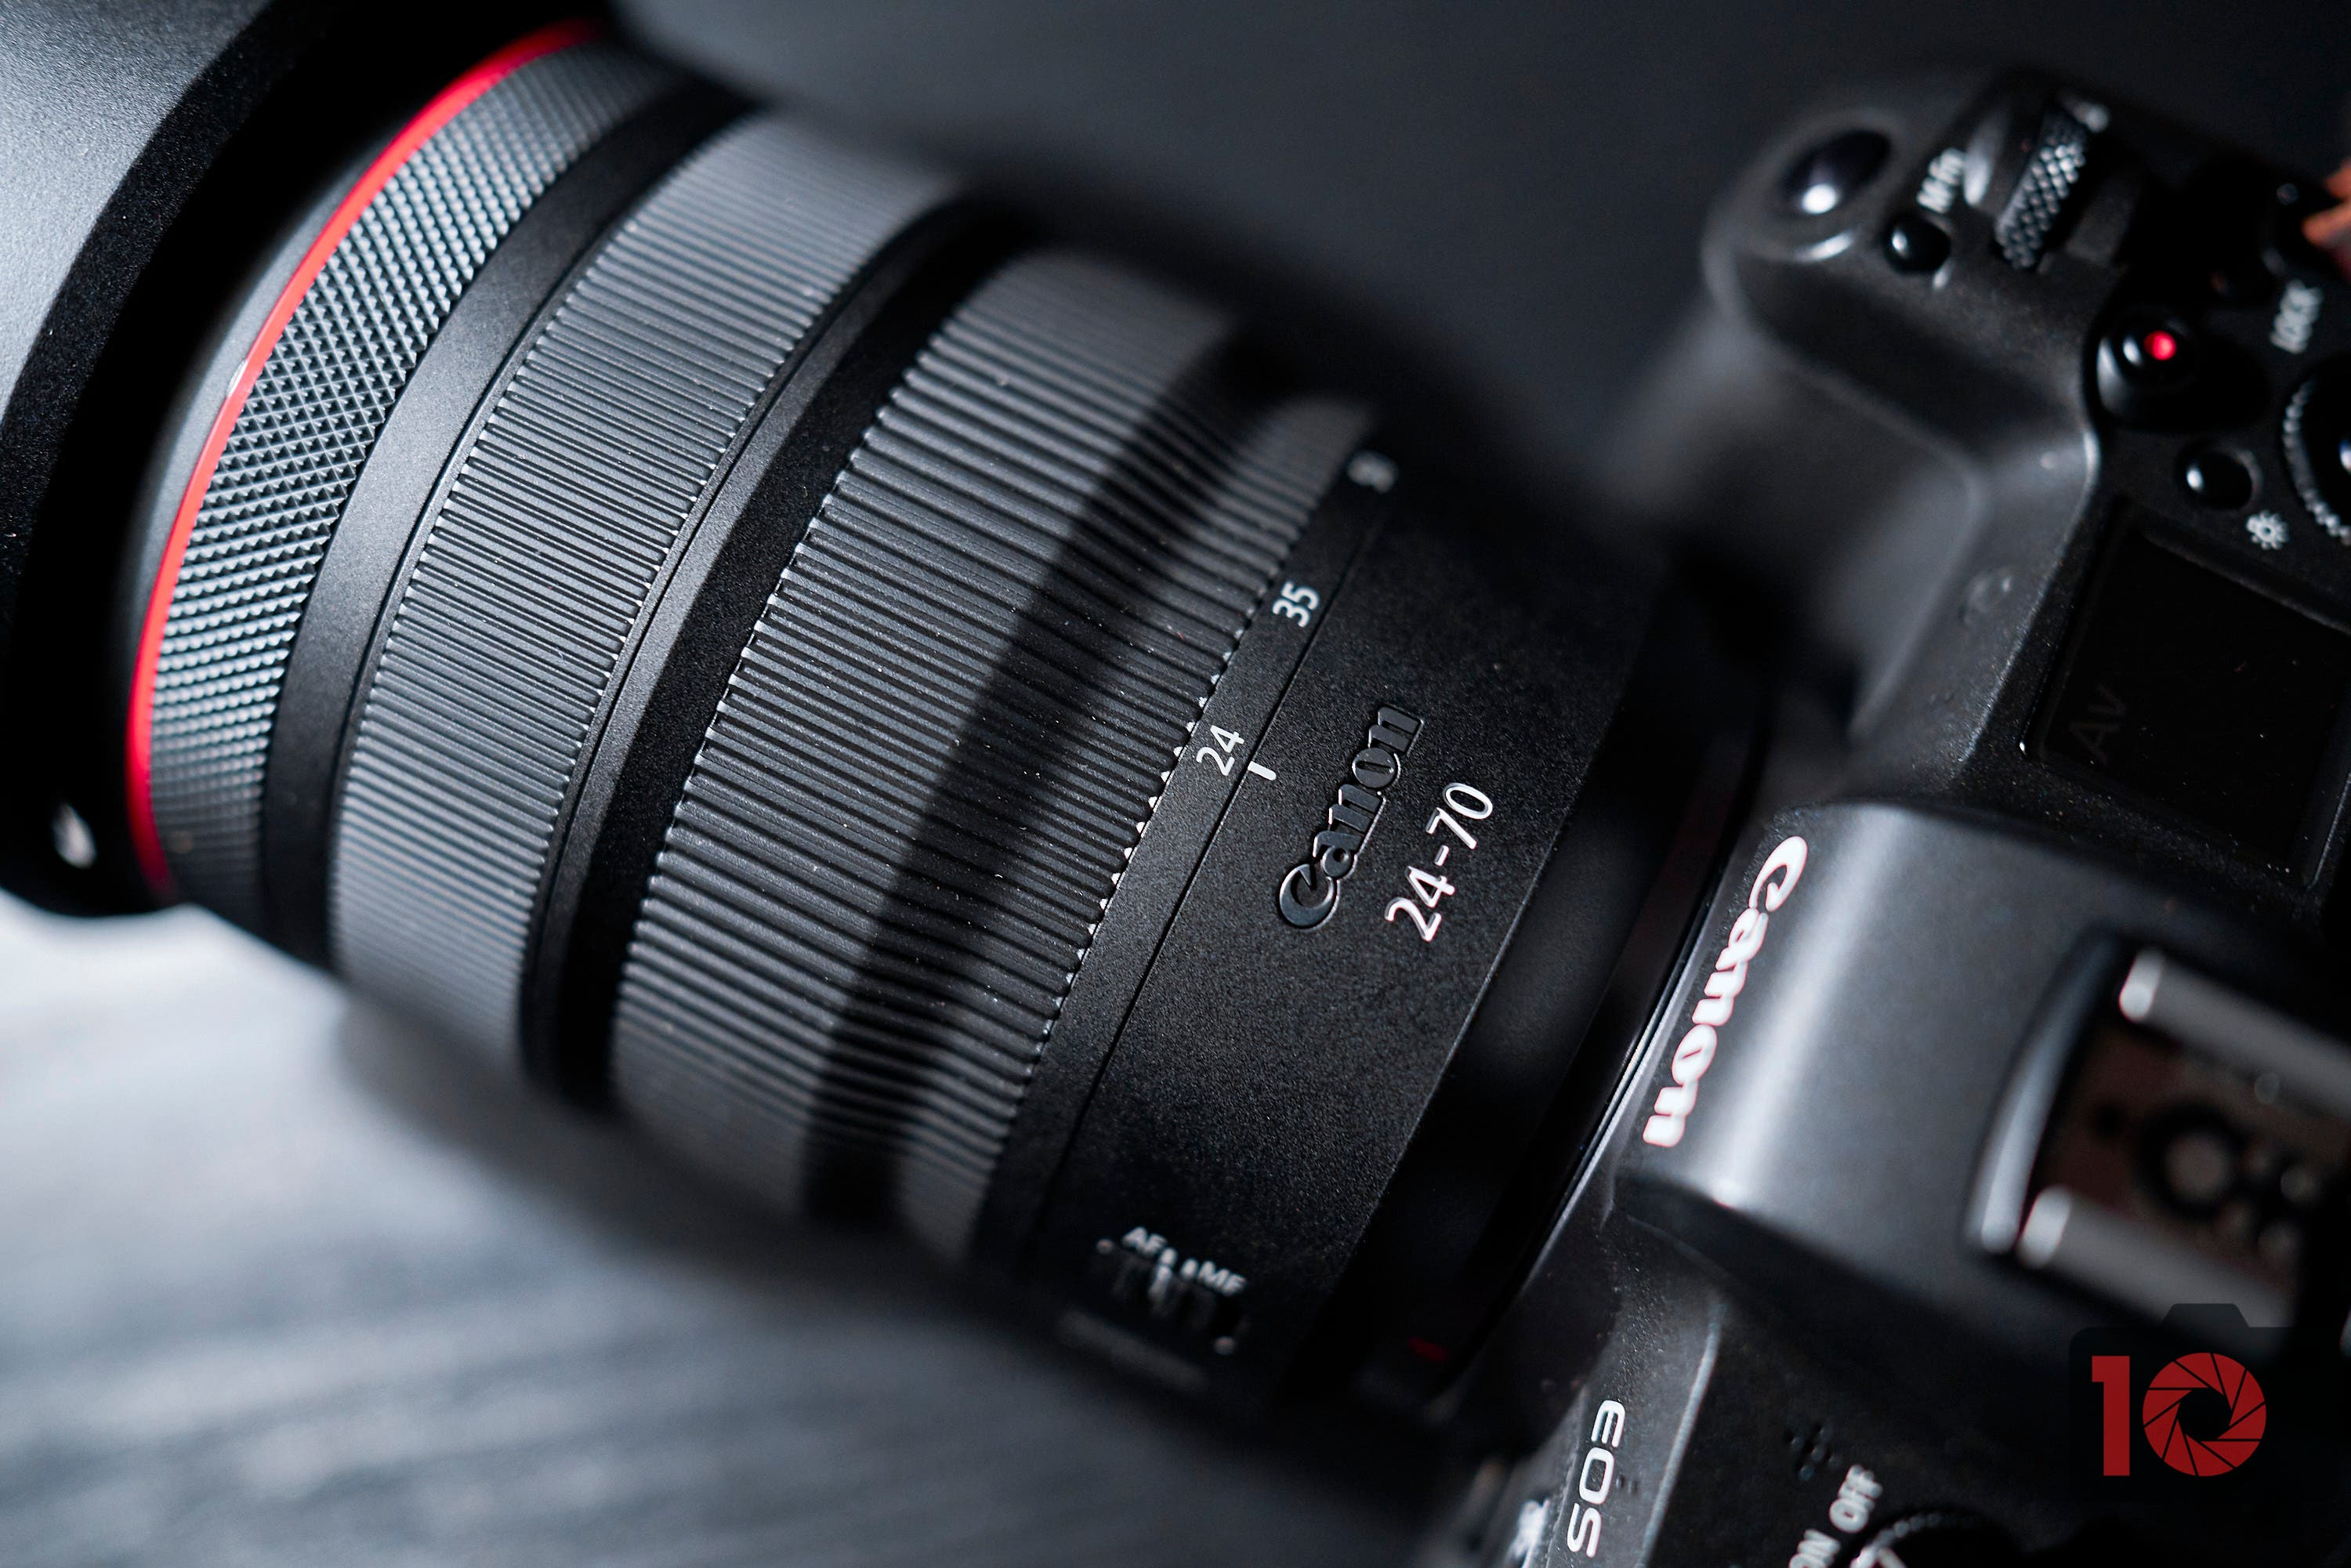 Review: Canon RF 24-70mm F2.8 L IS USM (This Lens Will Grow on You)